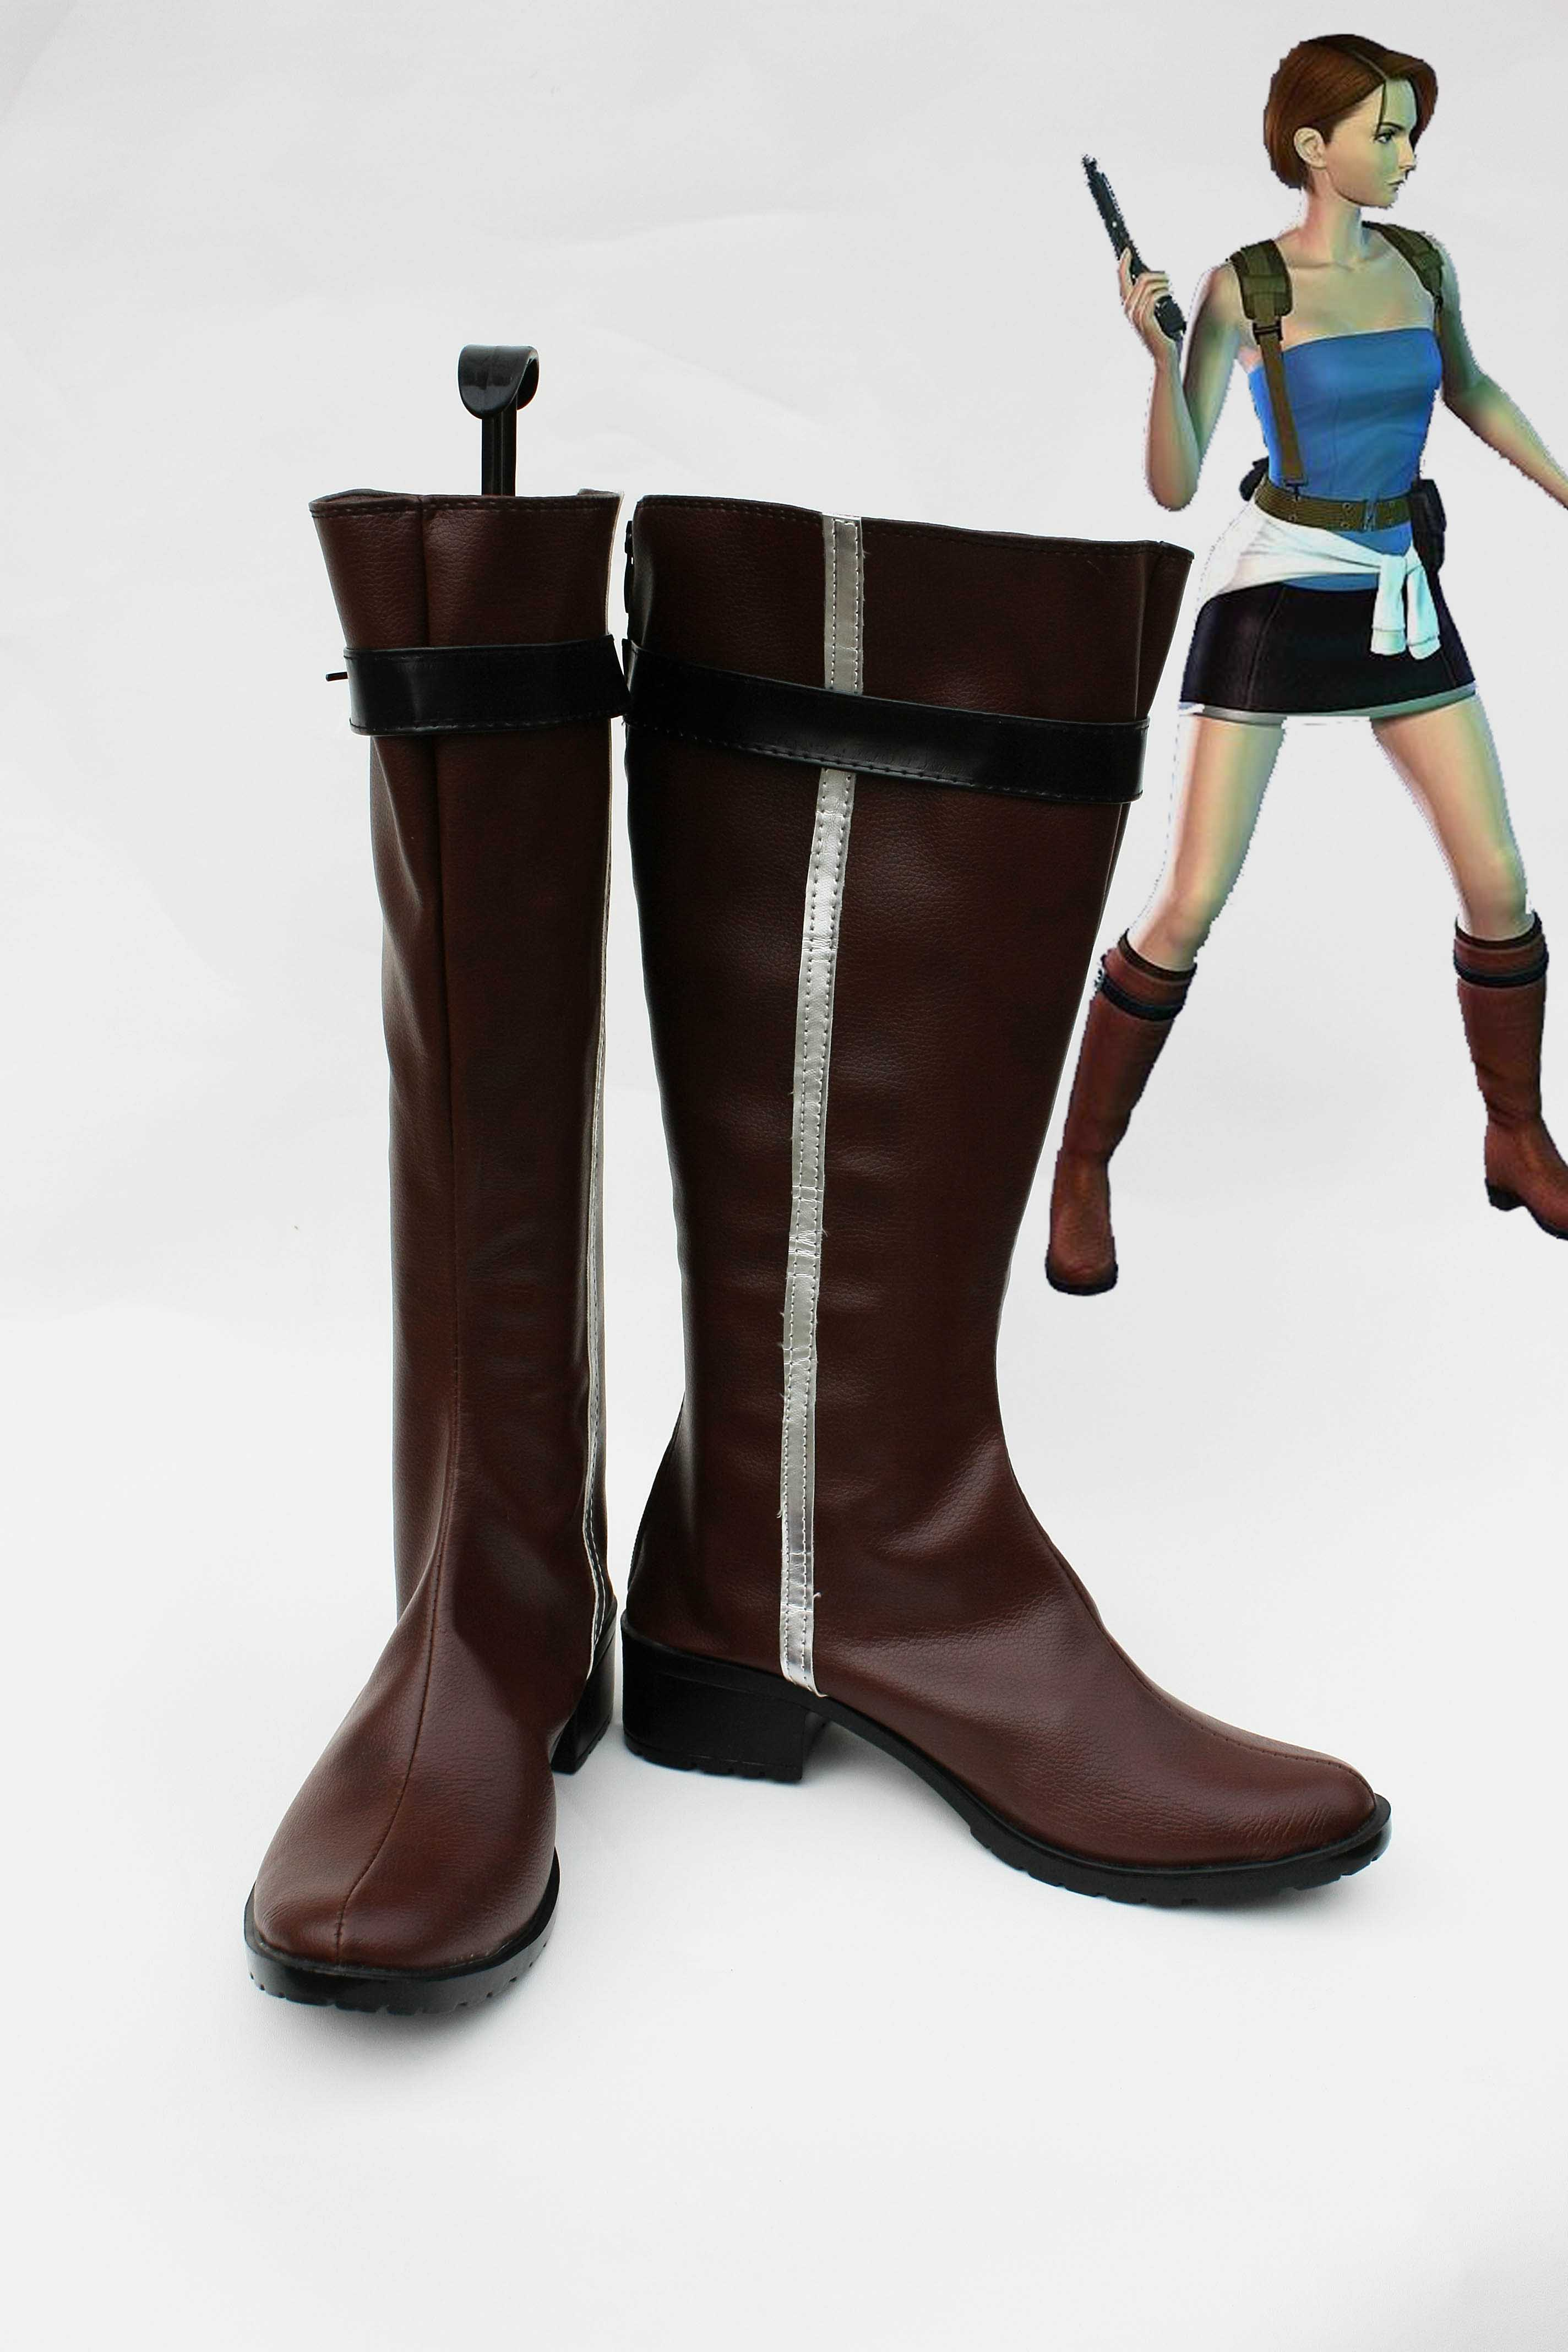 Resident Evil Jill Valentine Cosplay Boots